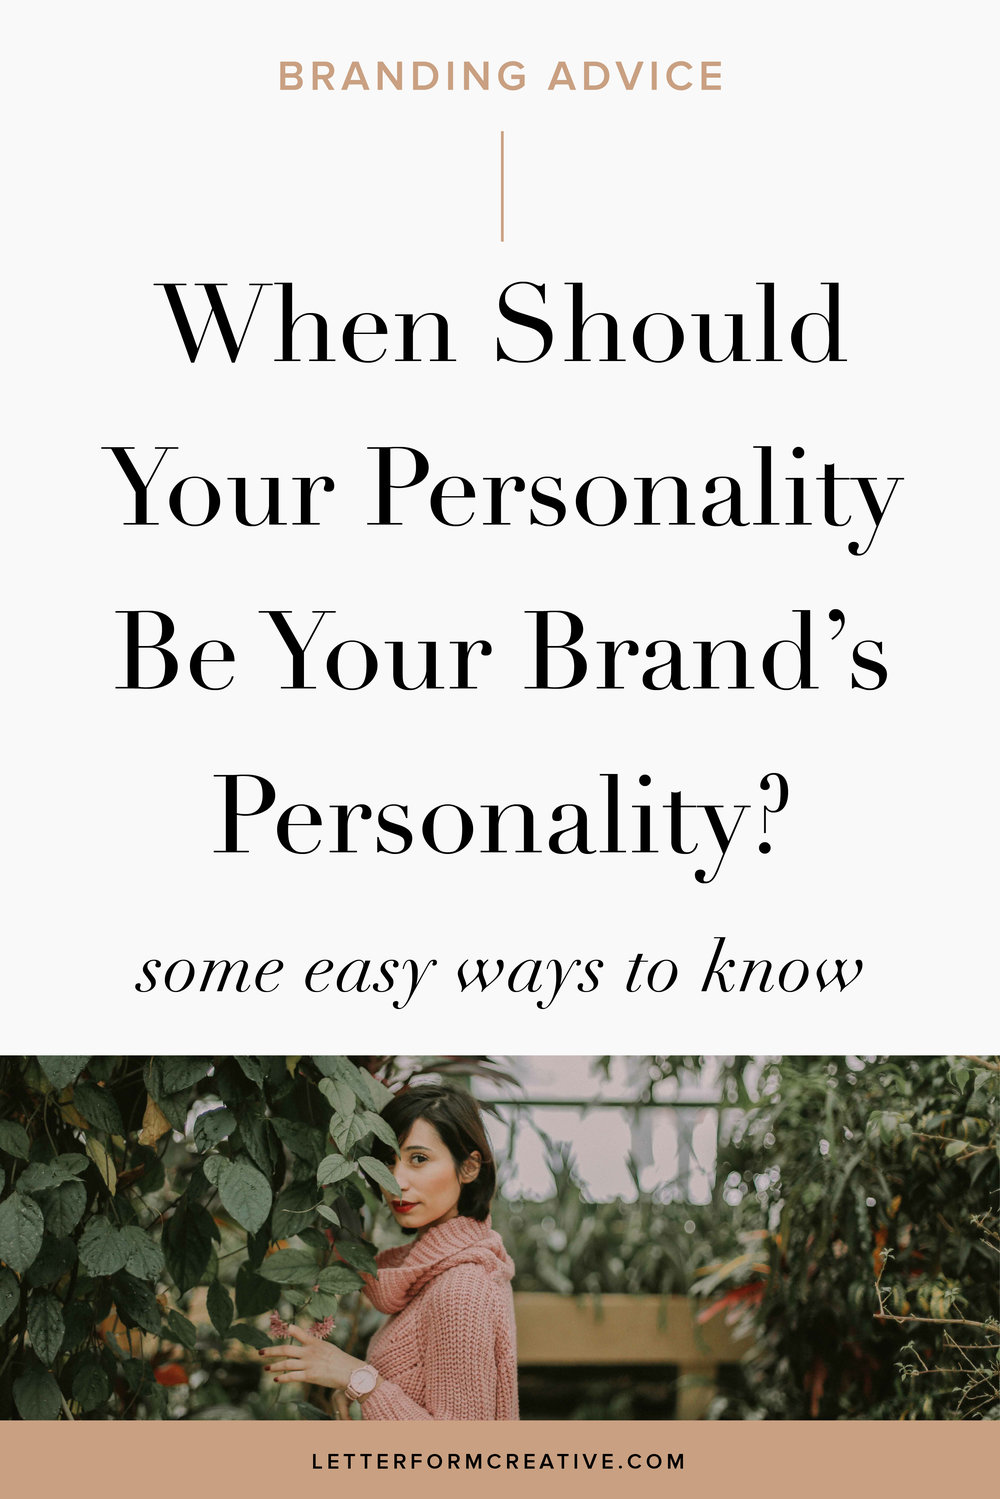 Hey Small business owner! Do you need some tips on how to define your brand's personality? This article offers advice on how to tell if you should design your brand around your own personality or if it should have its own. It includes tips for all entrepreneurs including solopreneurs, mult-owner businesses, service-based business, and product-based businesses. It includes a Brand personificiation exercise and a free mini branding guide! Click through to take advantage of all of this free branding advice from a professional!